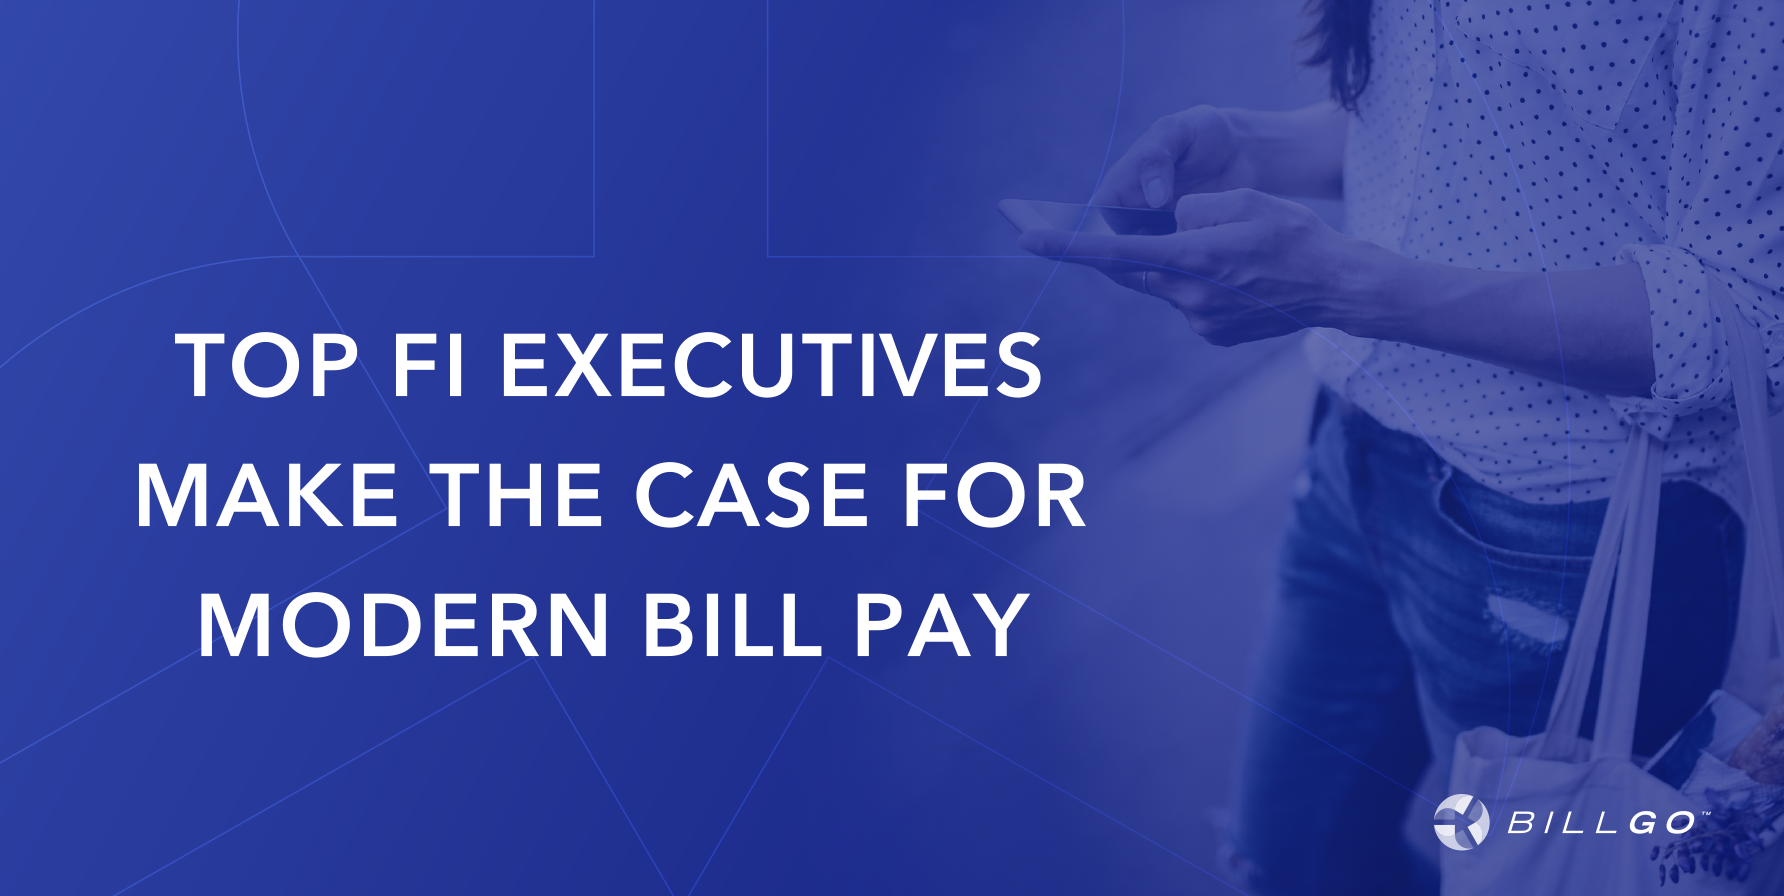 Top FI Execs Make the Case for Modern Bill Pay